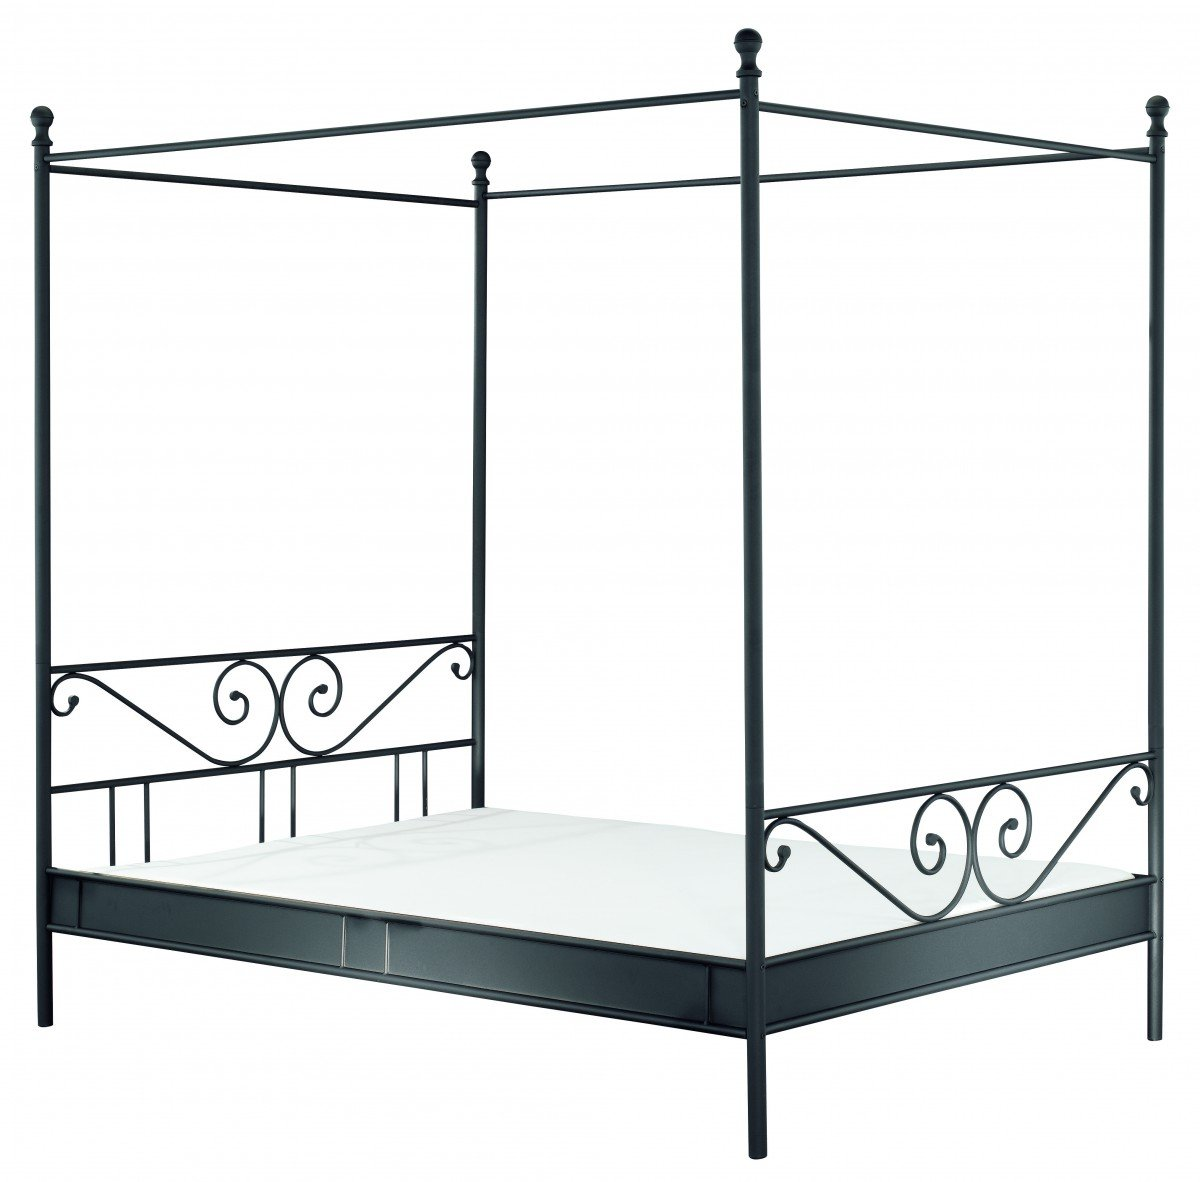 Dreams4Home Metallbett 'Magic' Bett,Himmelbett,Bettgestell,Metallbett,140/180x200,weiß oder schwarz, Liegefläche:180x200 cm;Farbe:Schwarz